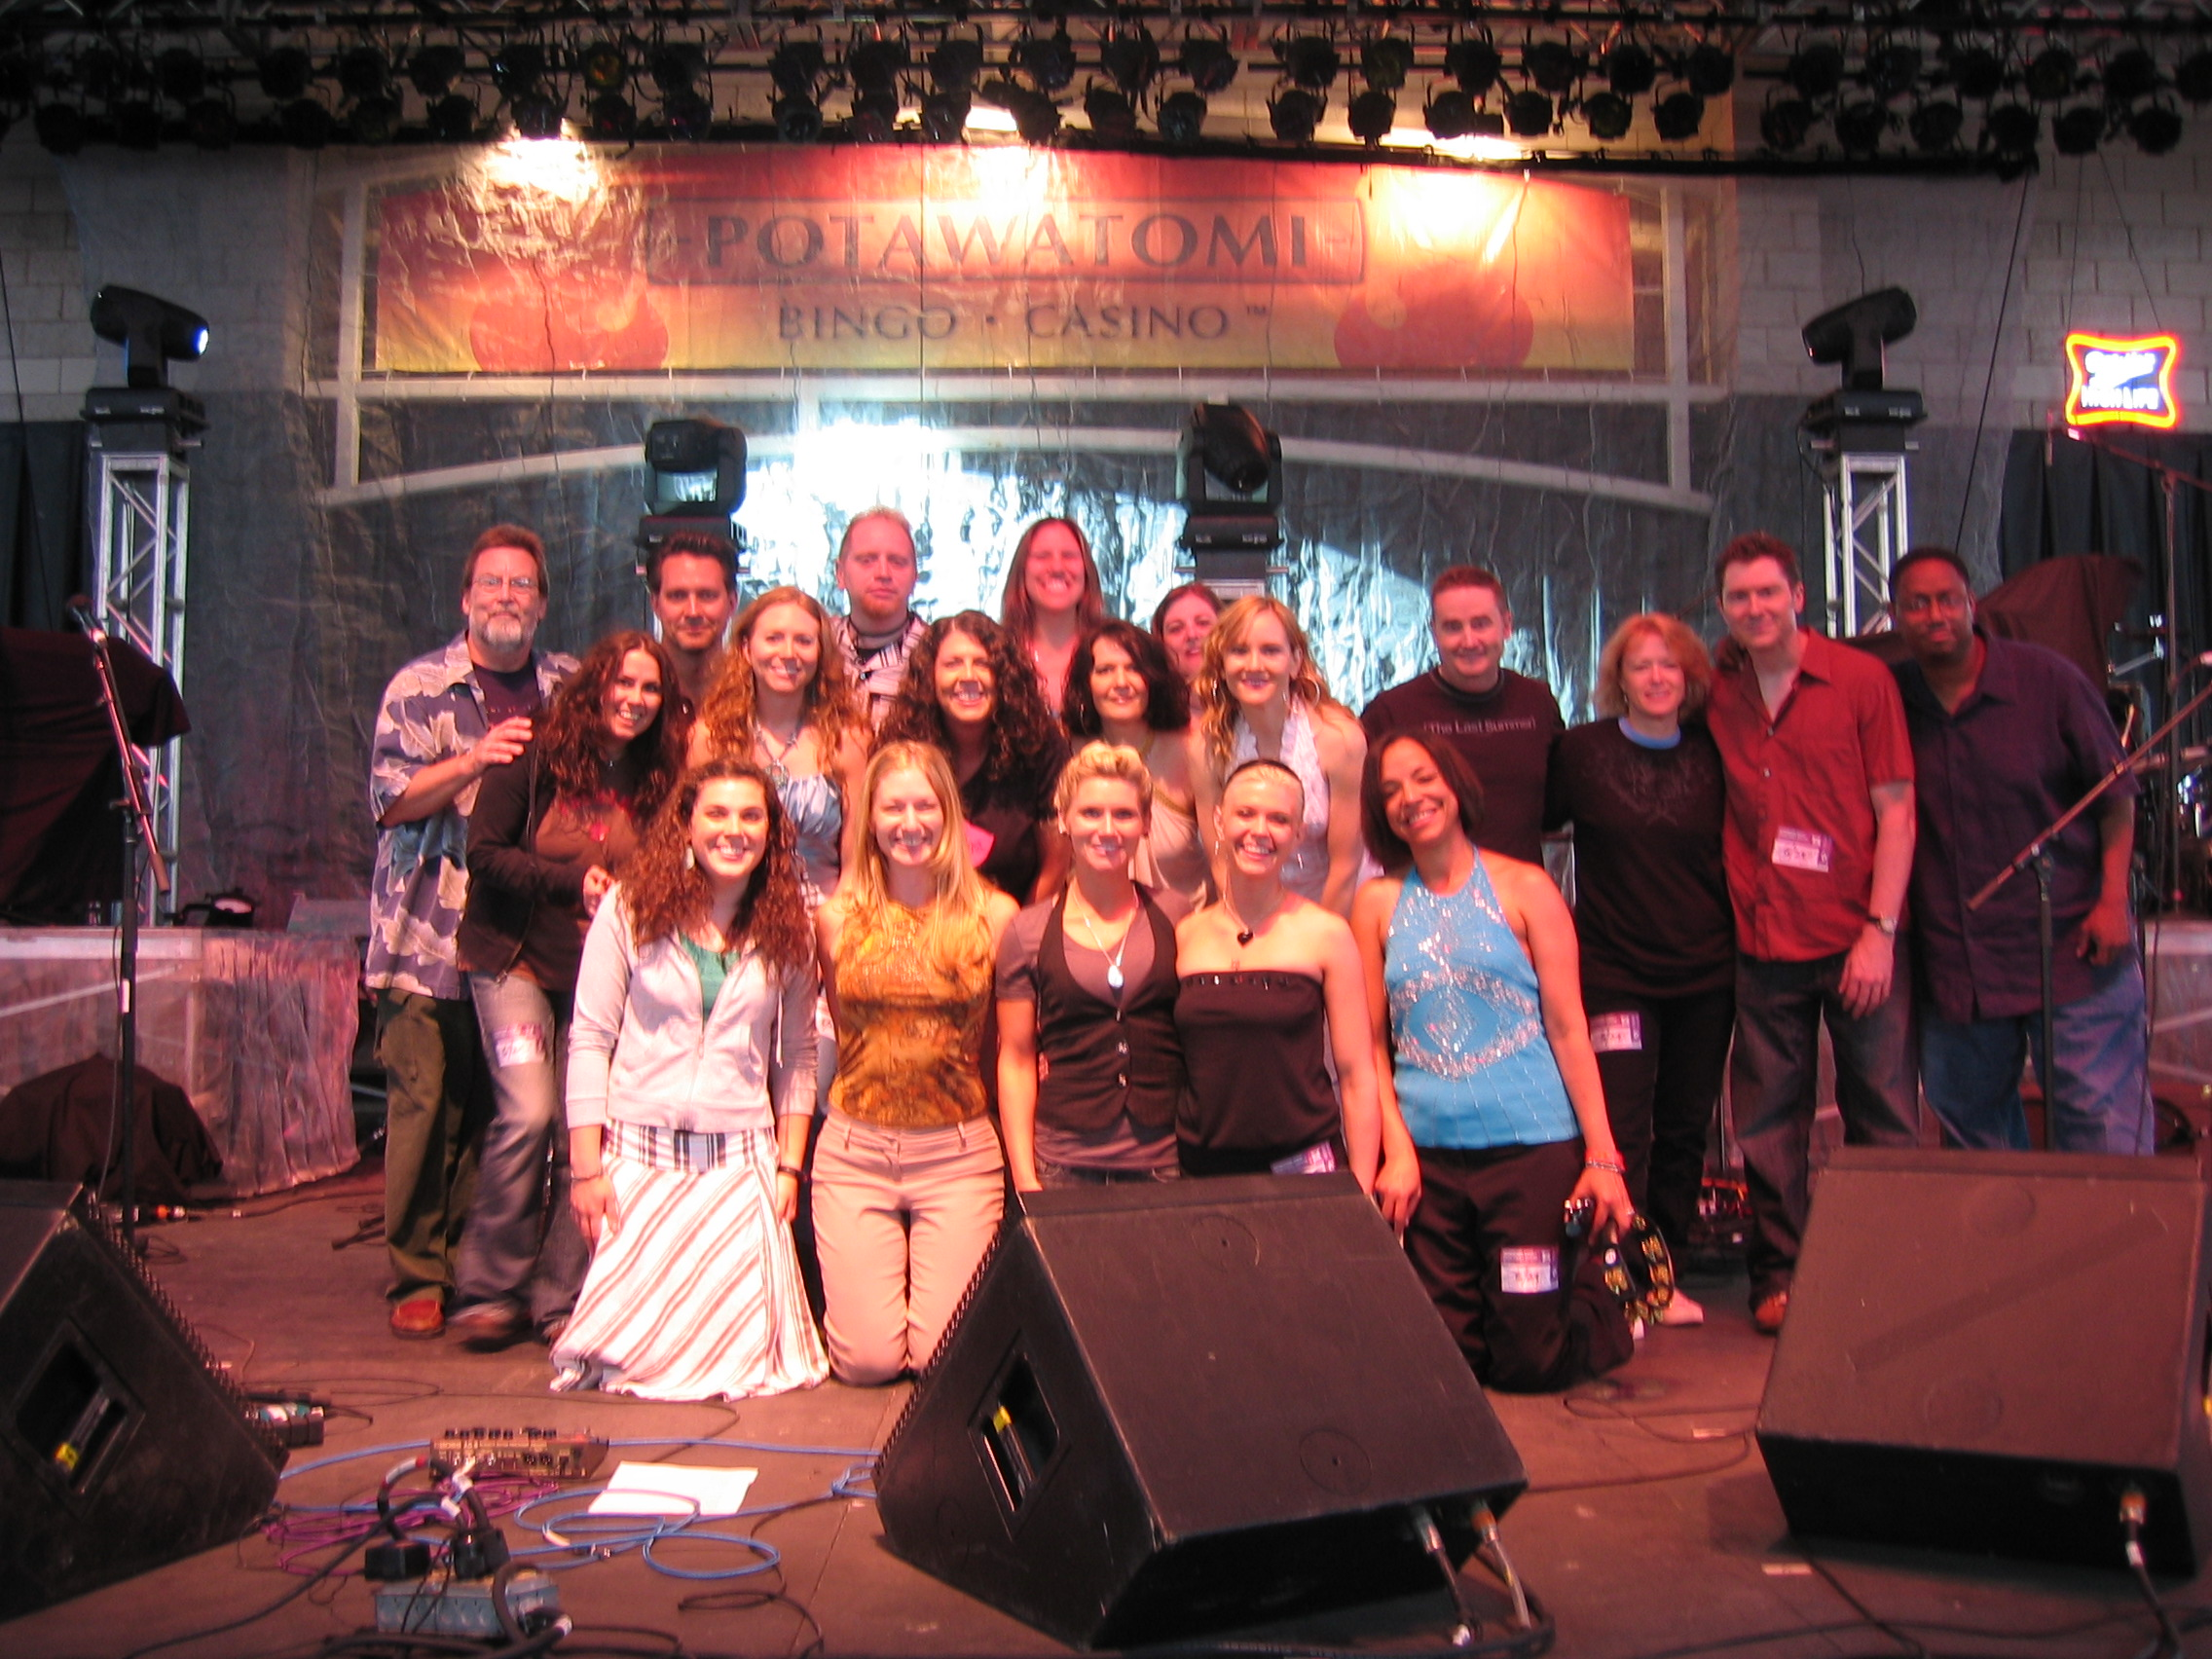 Group shot after the show! (photo: david pruszka)